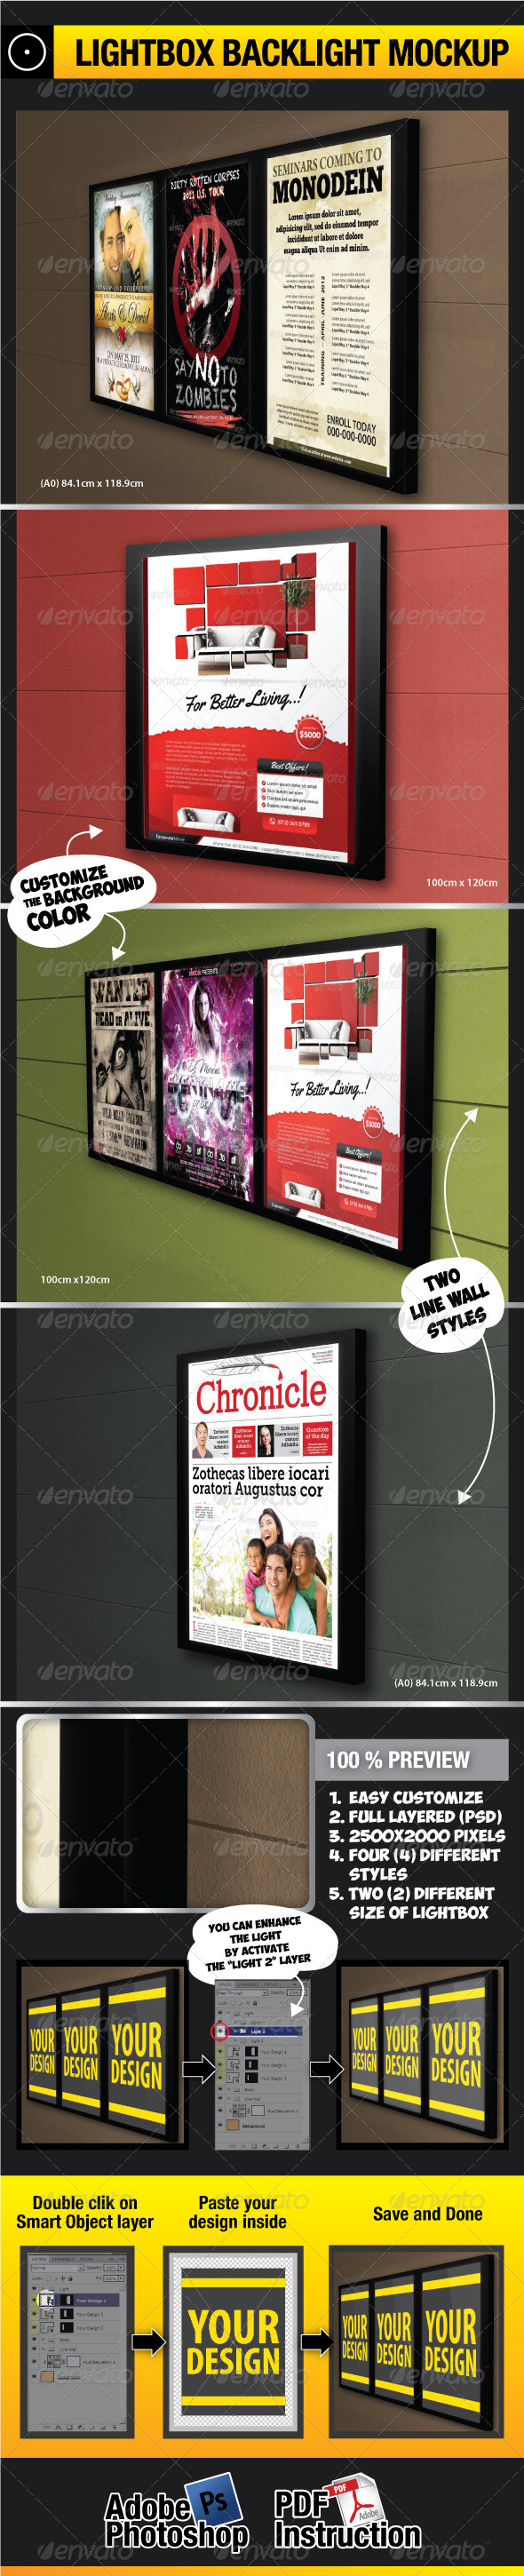 Lightbox Backlight Mockup - Miscellaneous Displays